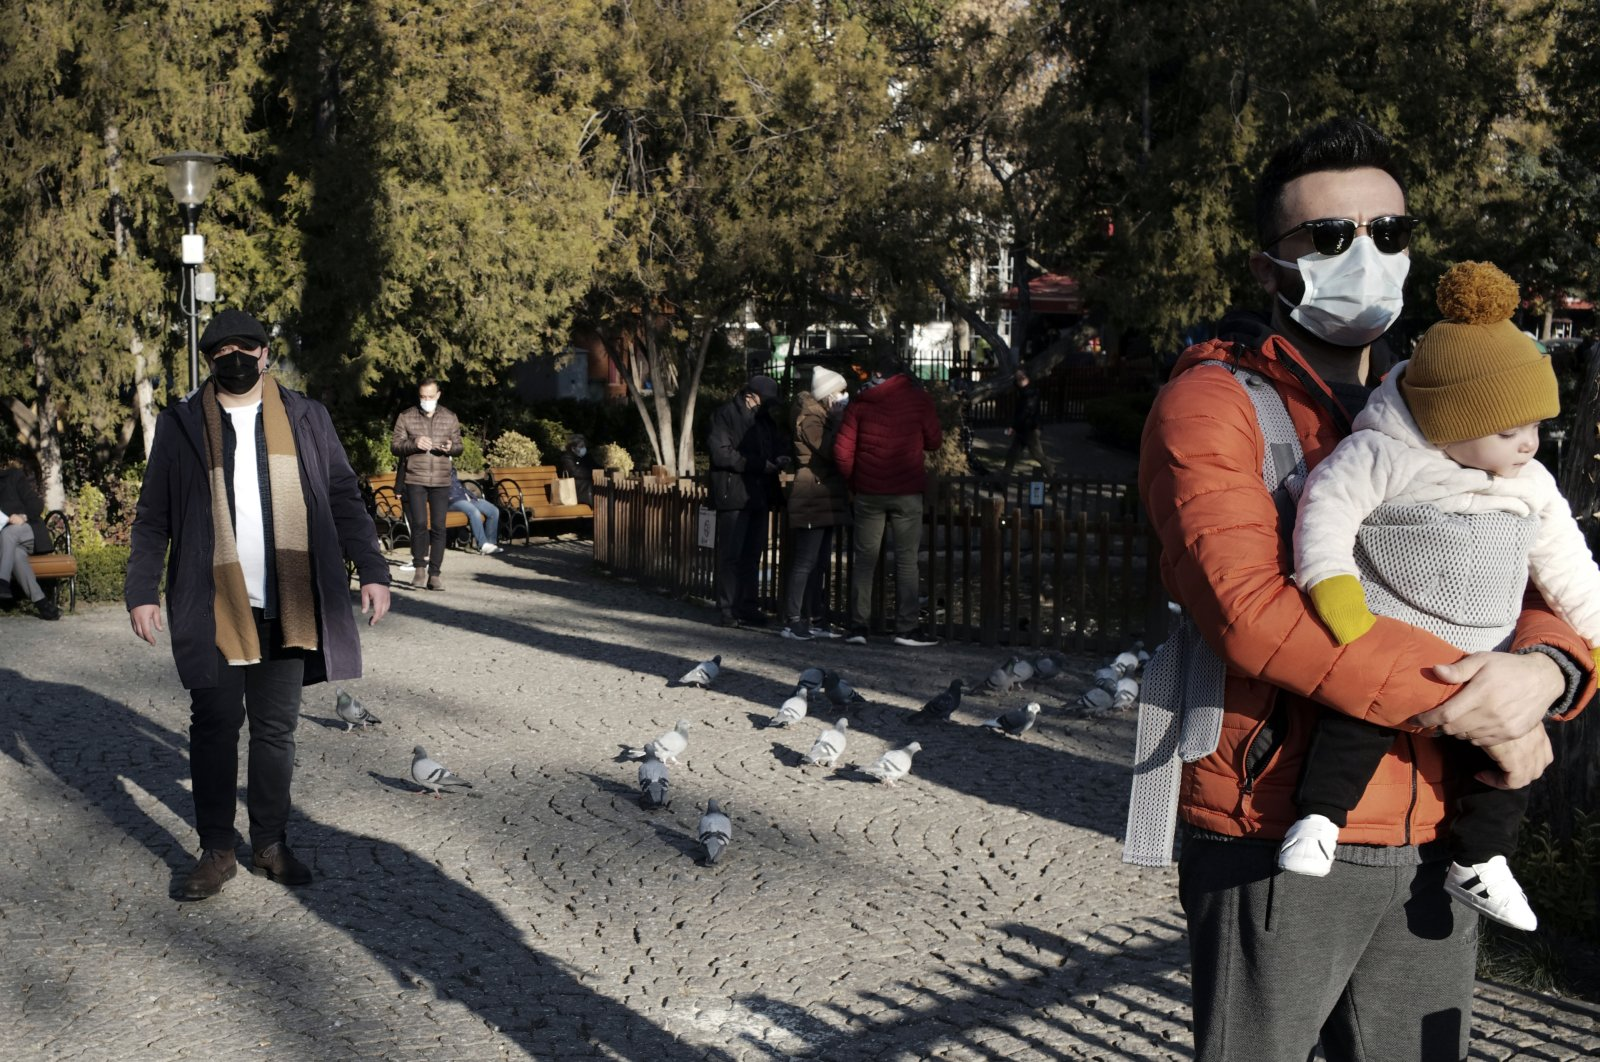 People wearing masks to help protect against the spread of coronavirus, visit a public garden in the capital Ankara, Turkey, Nov. 27, 2020. (AP Photo)